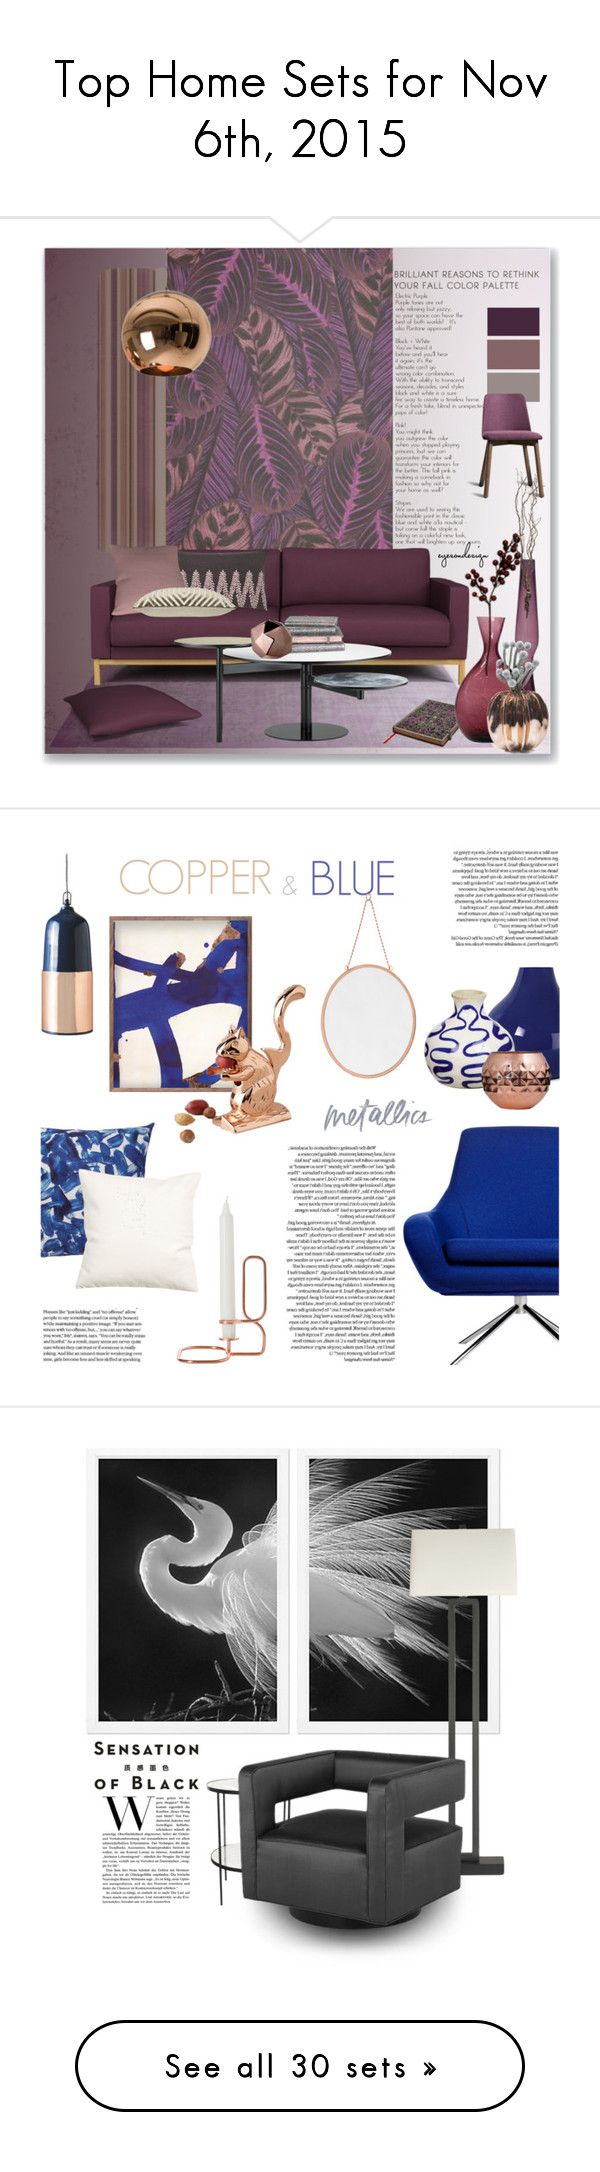 """""""Top Home Sets for Nov 6th, 2015"""" by polyvore ❤ liked on Polyvore featuring interior, interiors, interior design, thuis, home decor, interior decorating, Benjamin Moore, Blenko, Blu Dot en Murmur"""